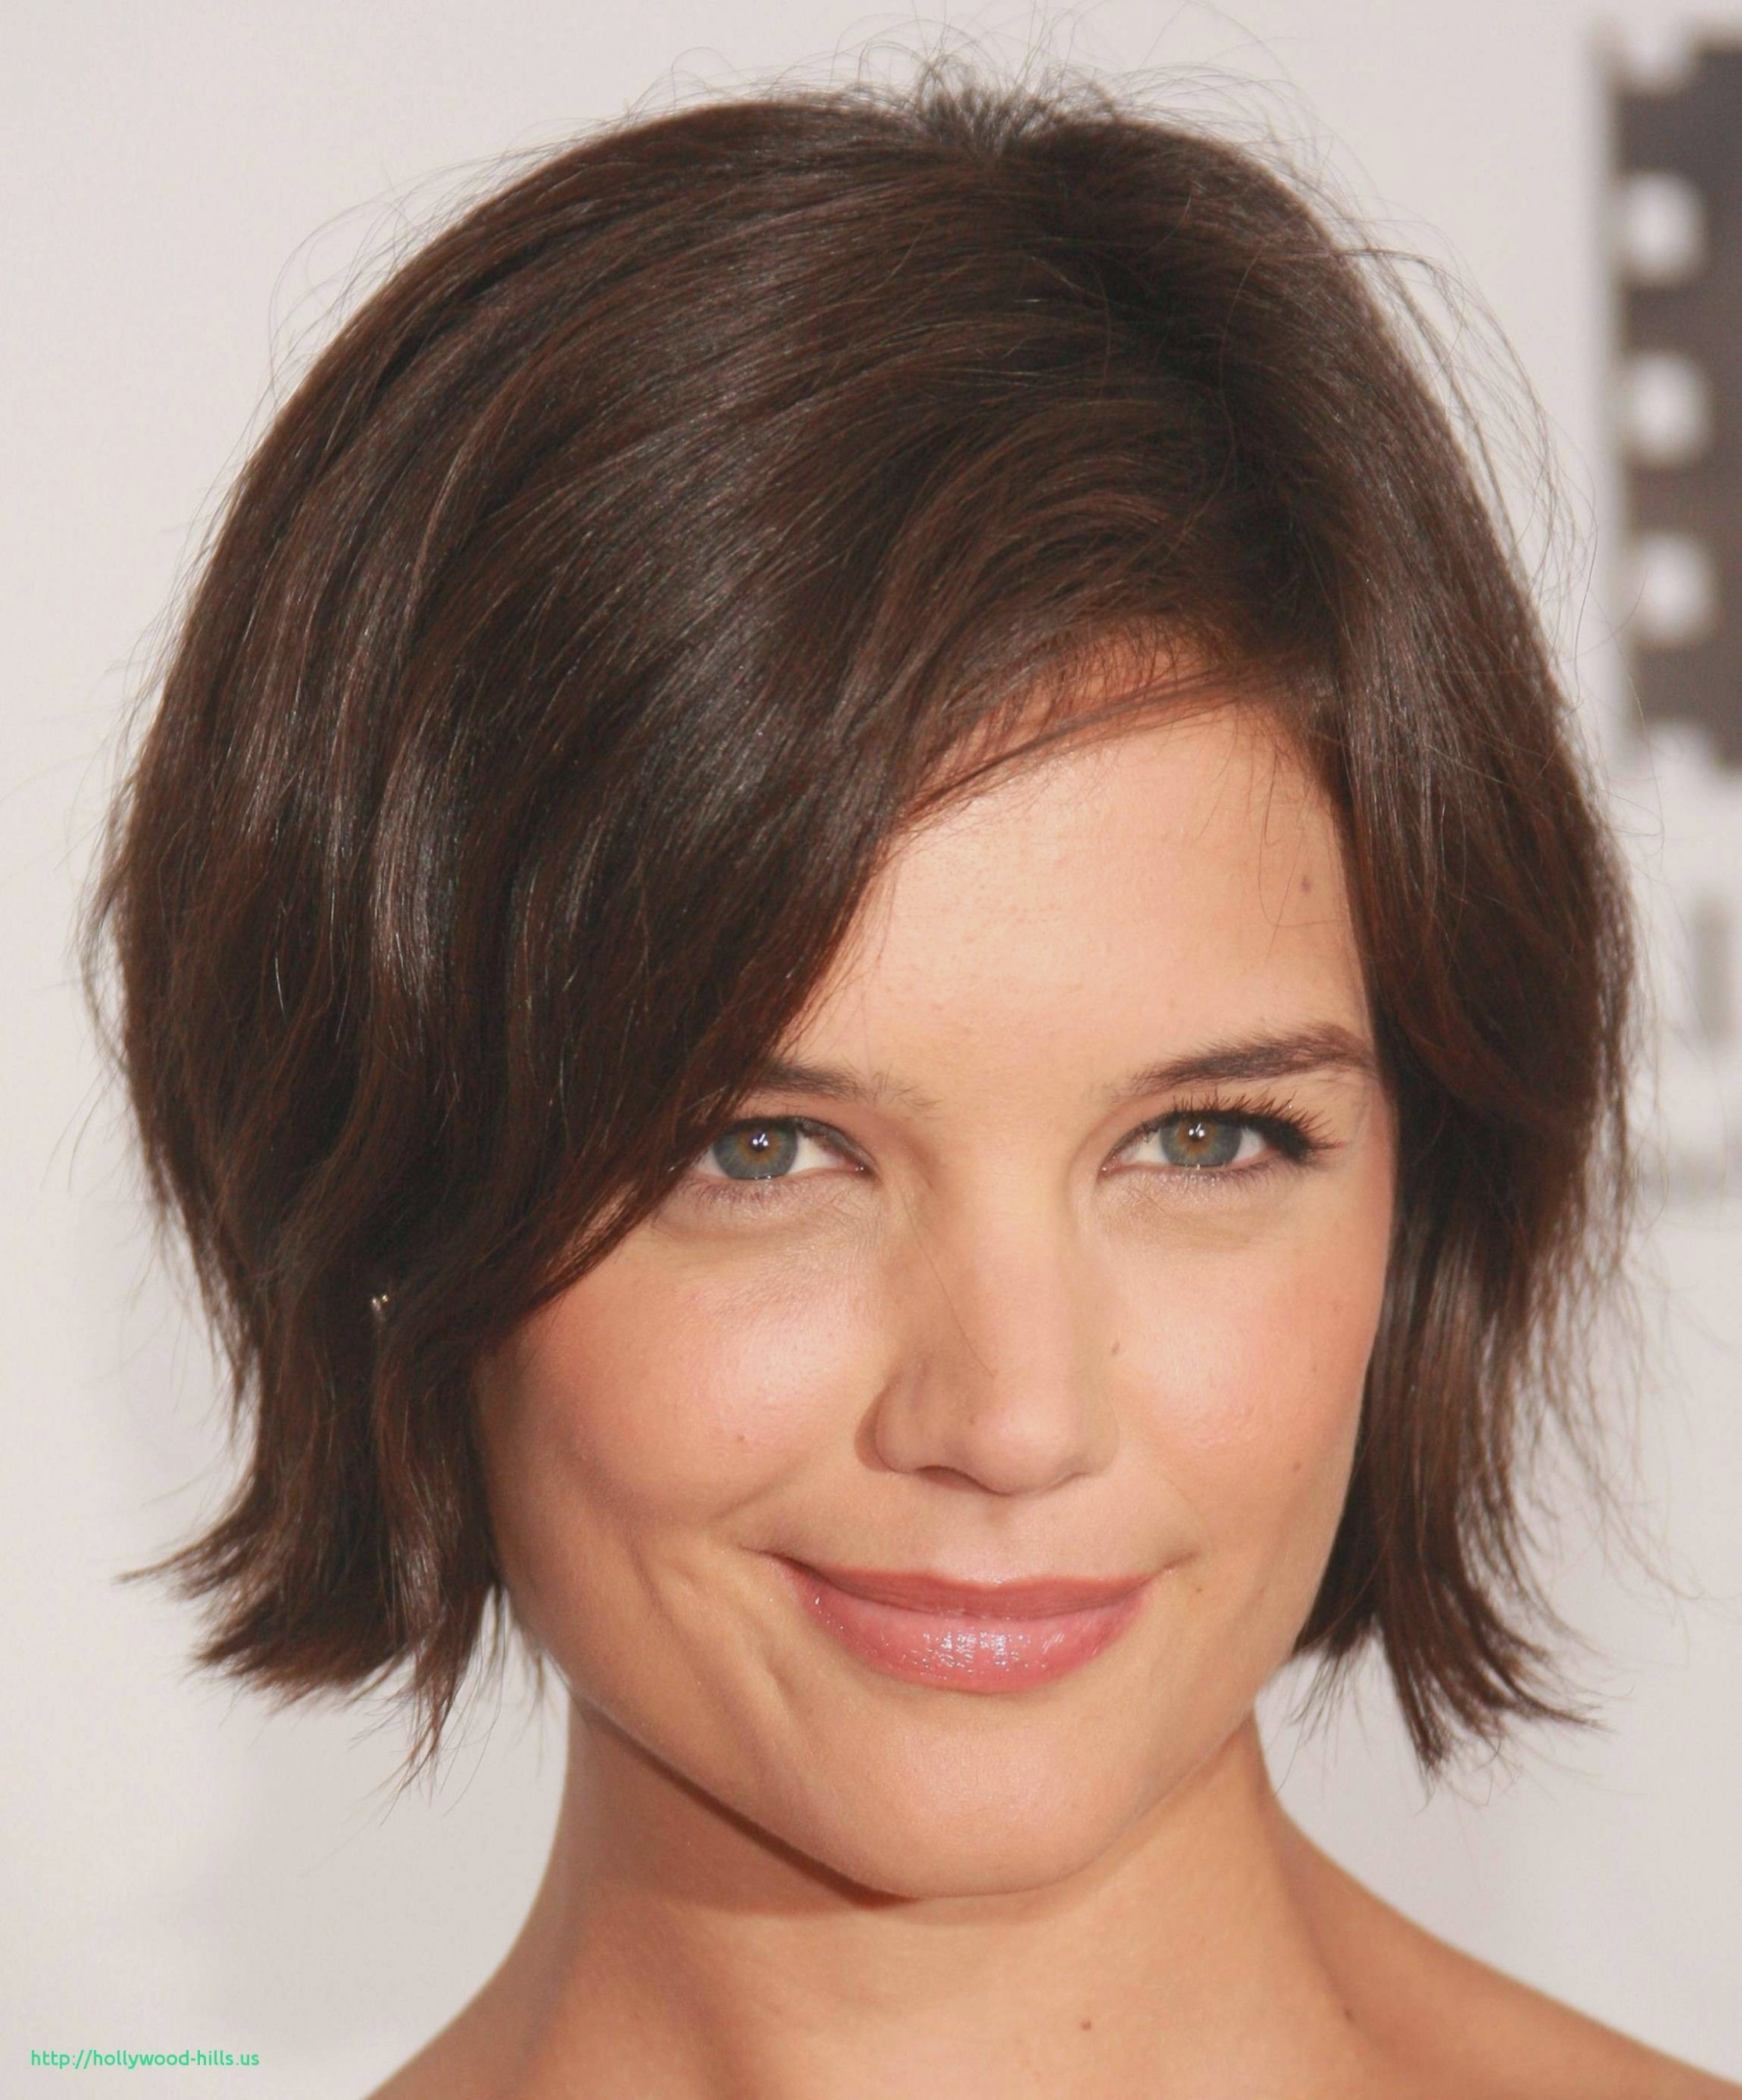 Korean Haircut For Short Hair Unique Short Hairstyle For Round Face within Top-drawer Asian Haircut For Round Face Short Hair